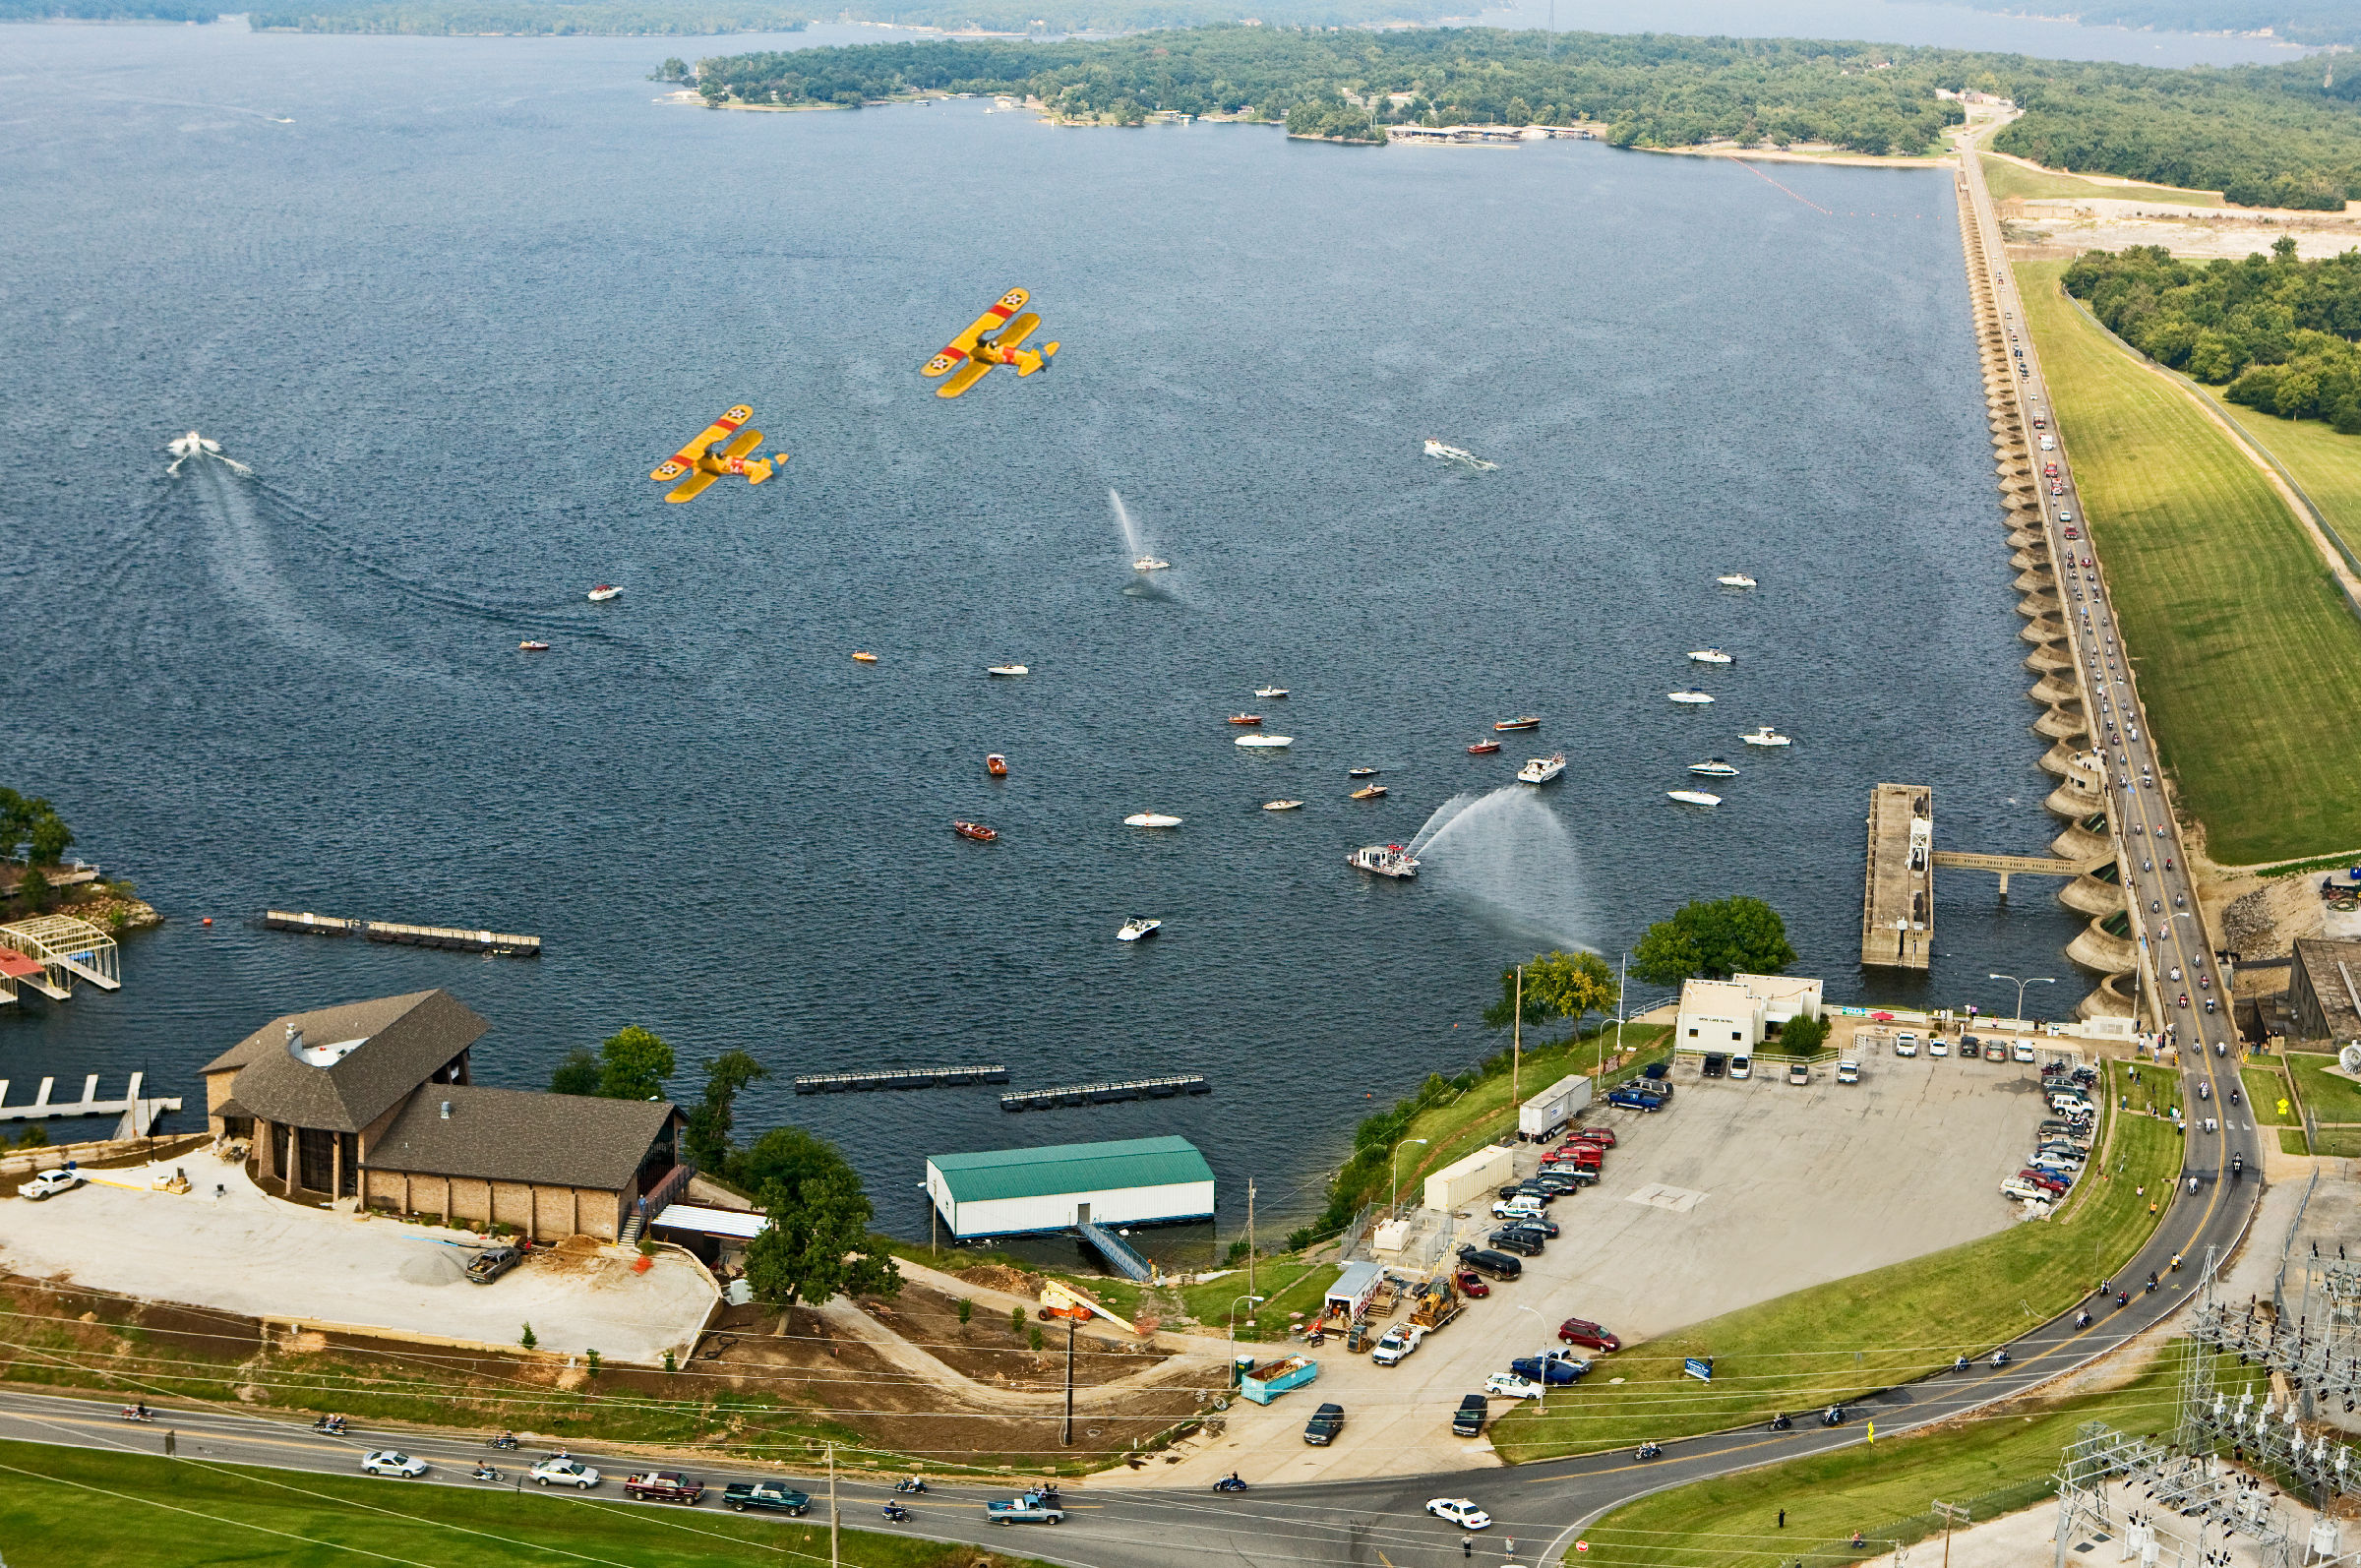 Grand lake dam with biplanes and motorcycles